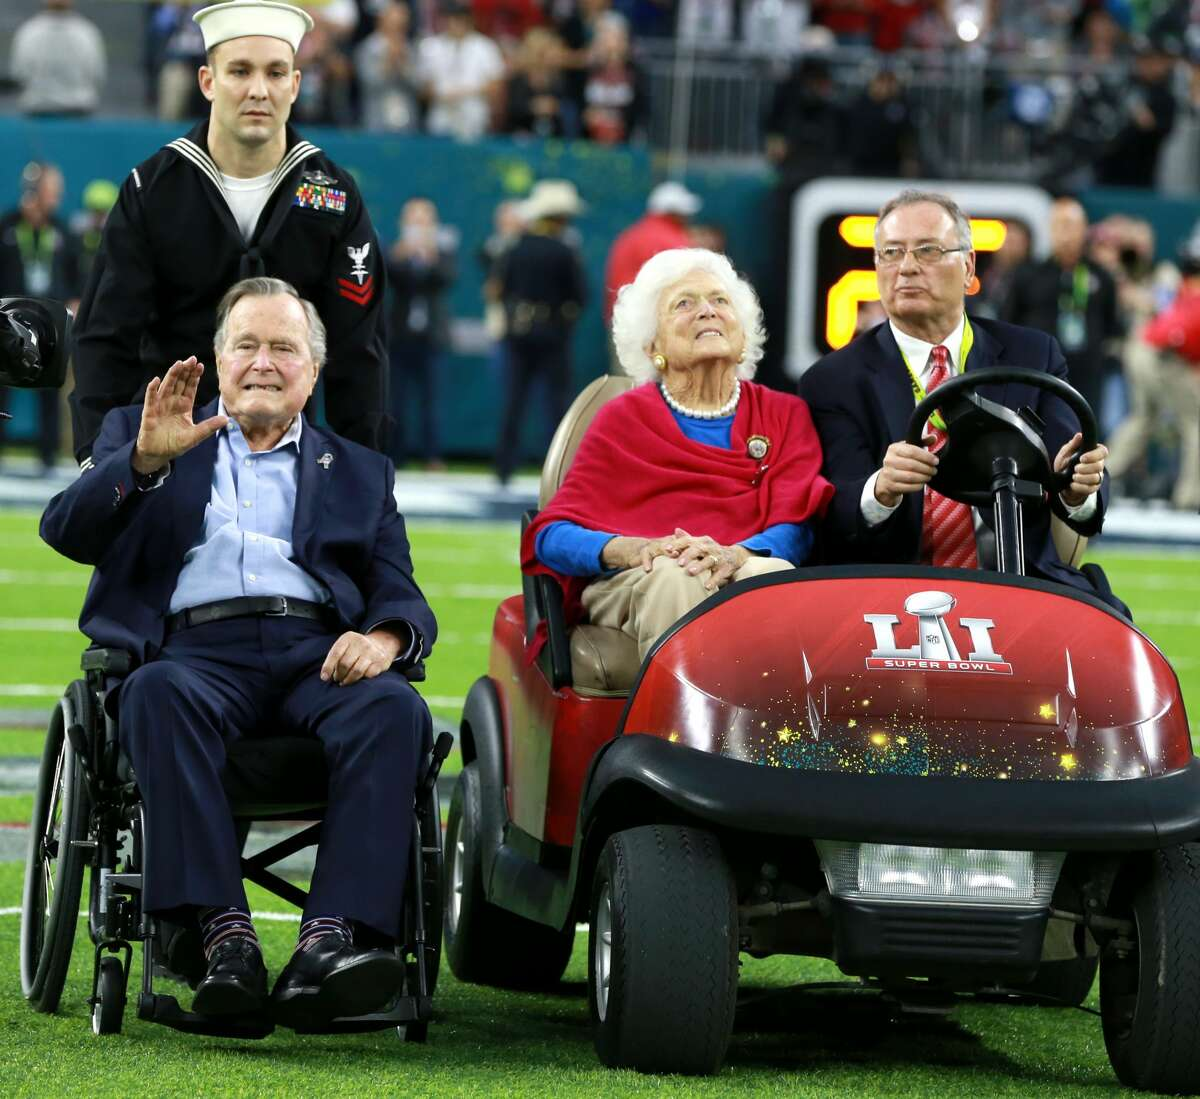 HOUSTON, TX - FEBRUARY 5: Former President George H.W. Bush and former First Lady Barbara Bush arrive for the coin toss during pregame activities at NRG Stadium before the Super Bowl. The Atlanta Falcons play the New England Patriots in Super Bowl LI at NRG Stadium in Houston on Feb. 5, 2017. (Photo by Jim Davis/The Boston Globe via Getty Images)